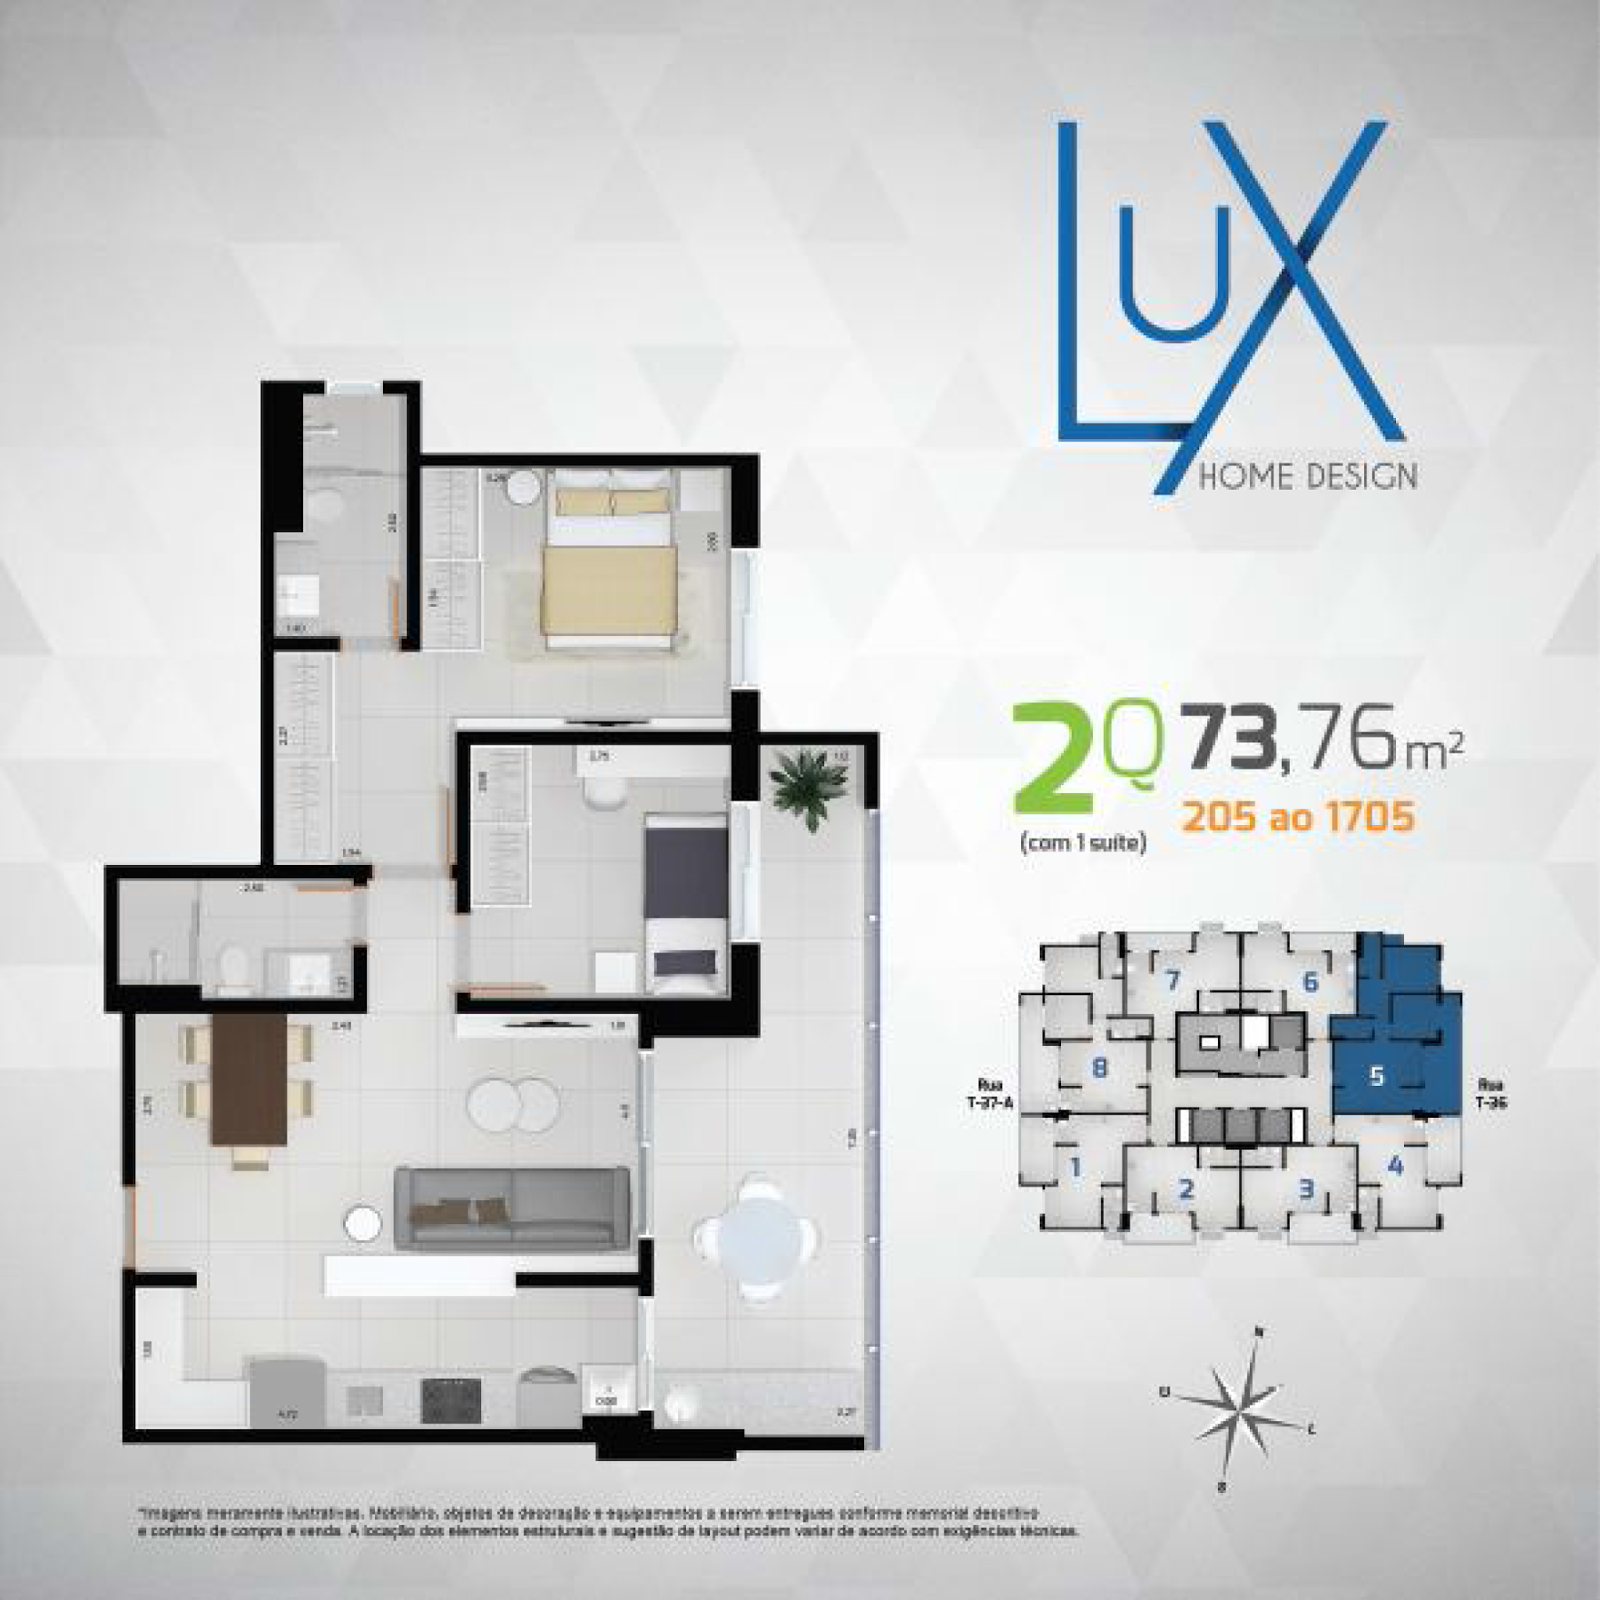 Lux home design goiania home review co for Lux home design